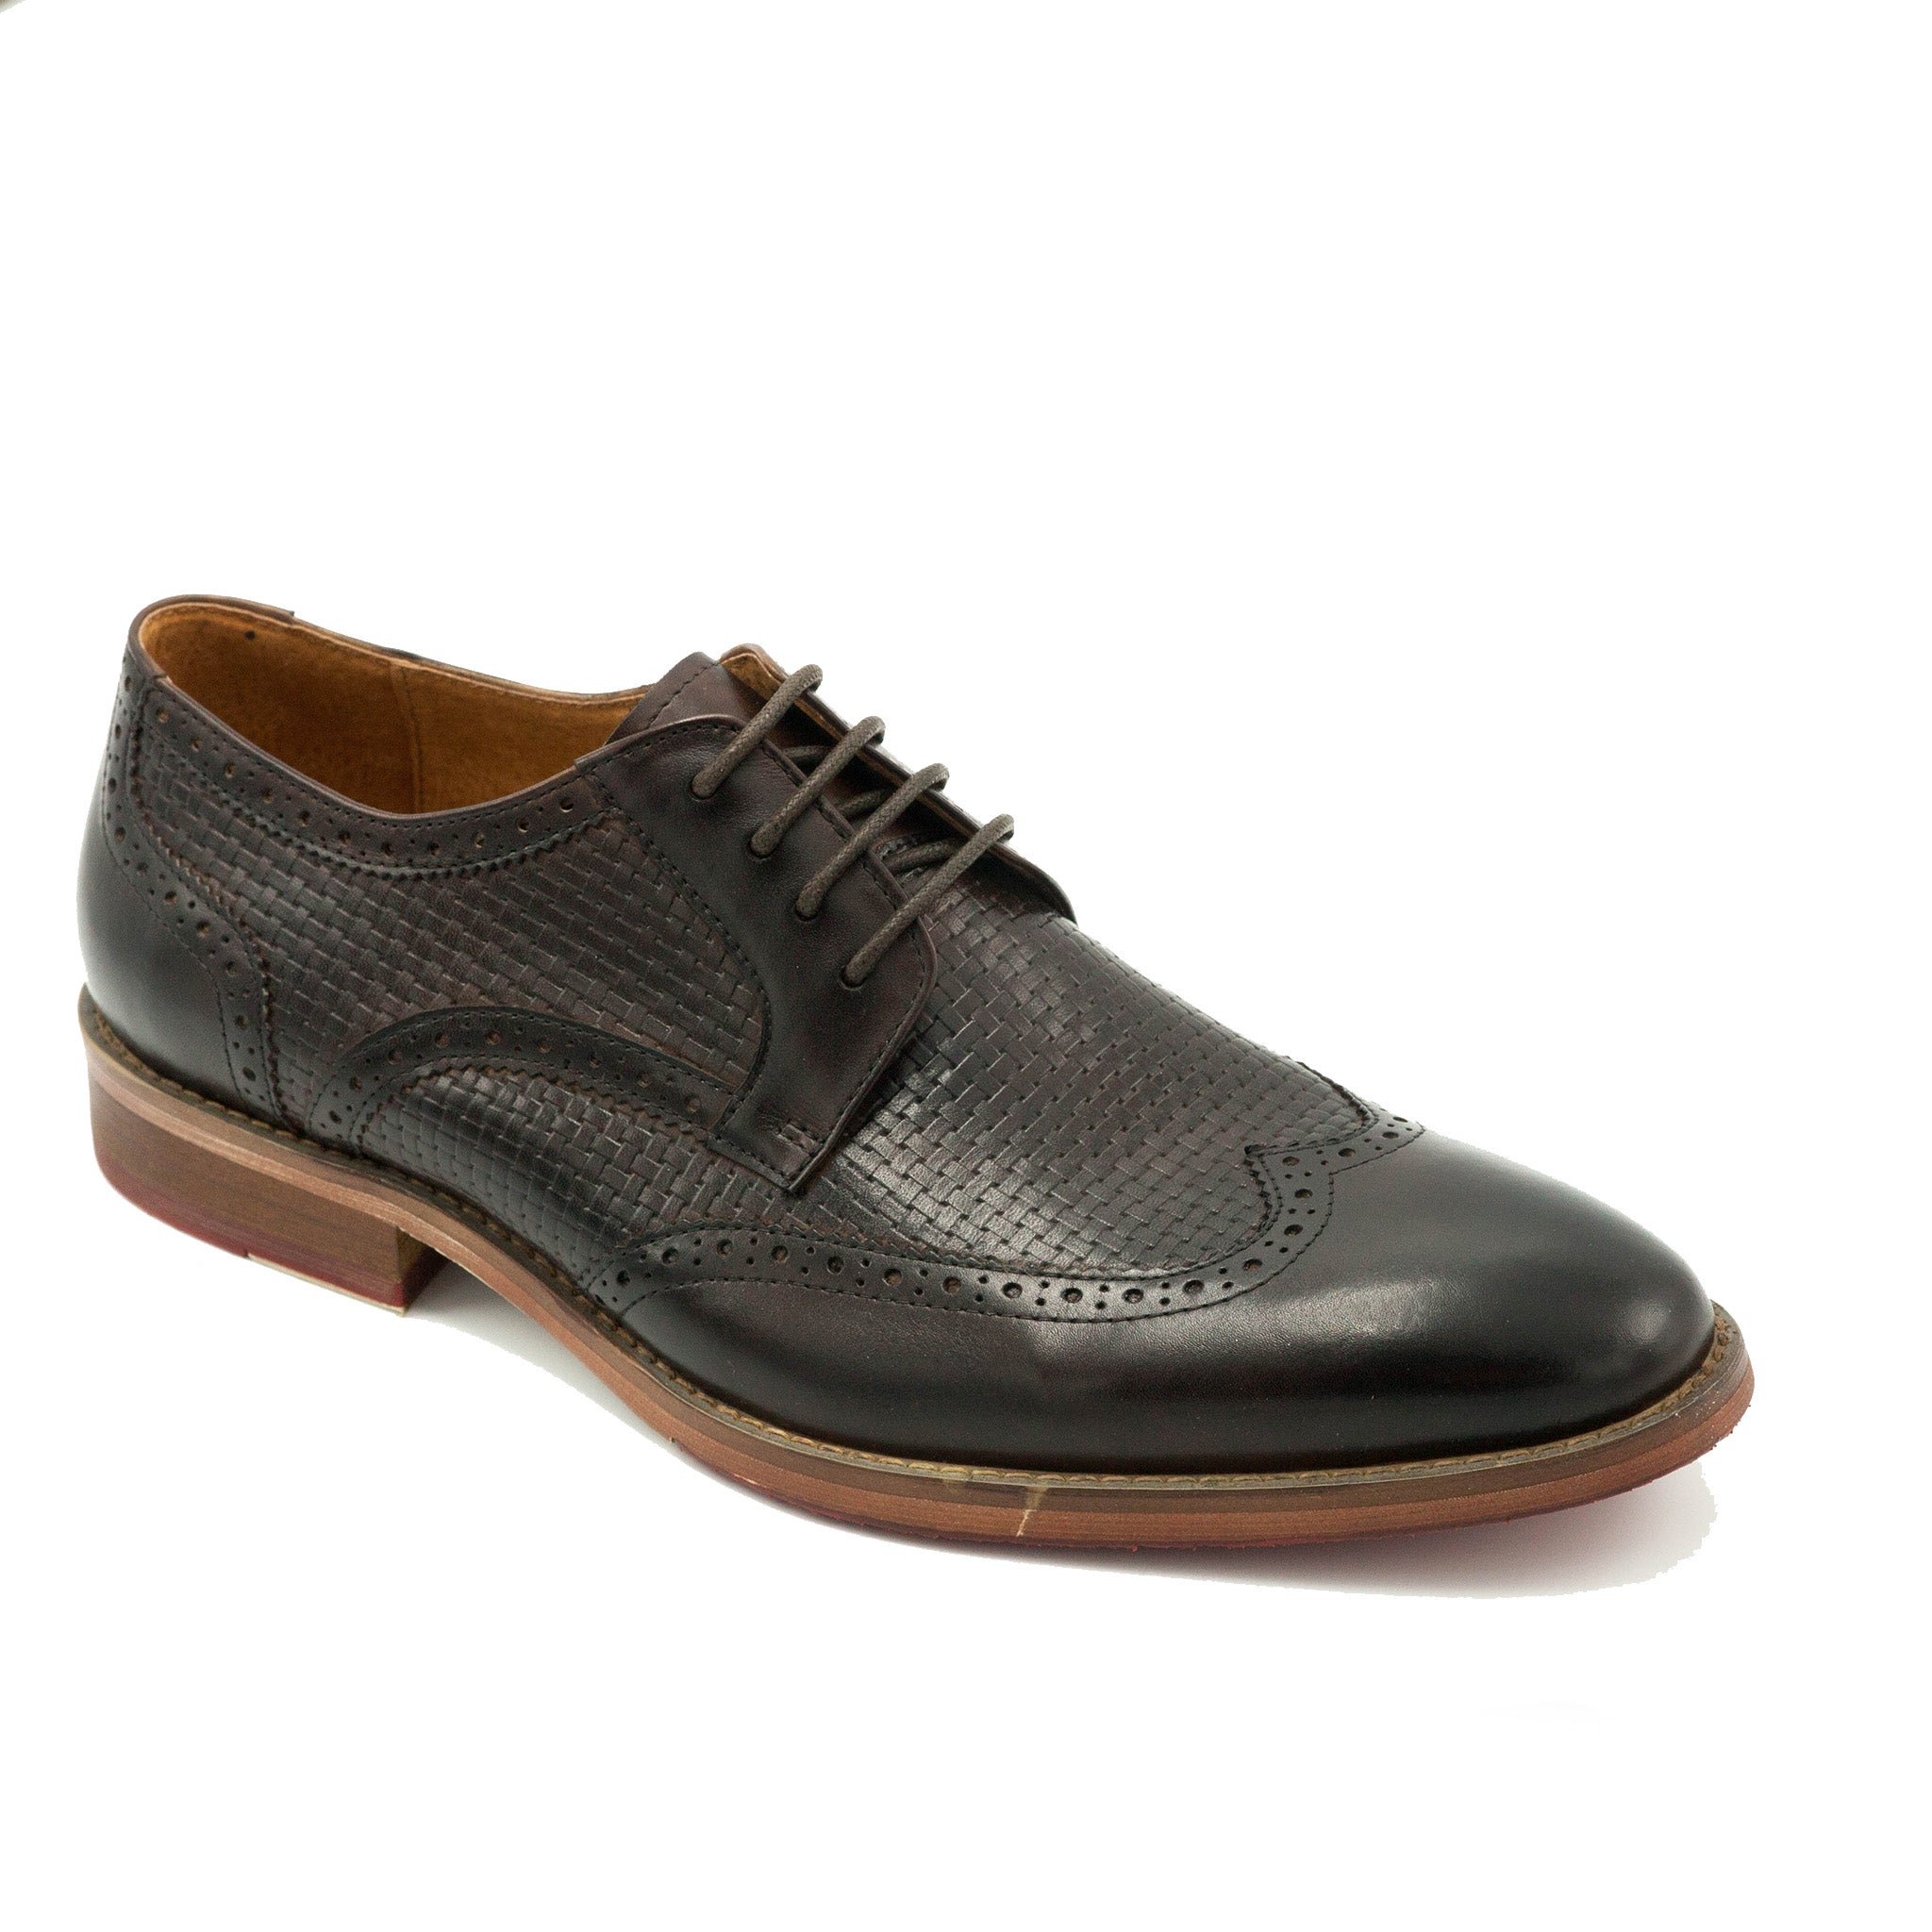 CARLTON LACE UP WING TIP CHOC